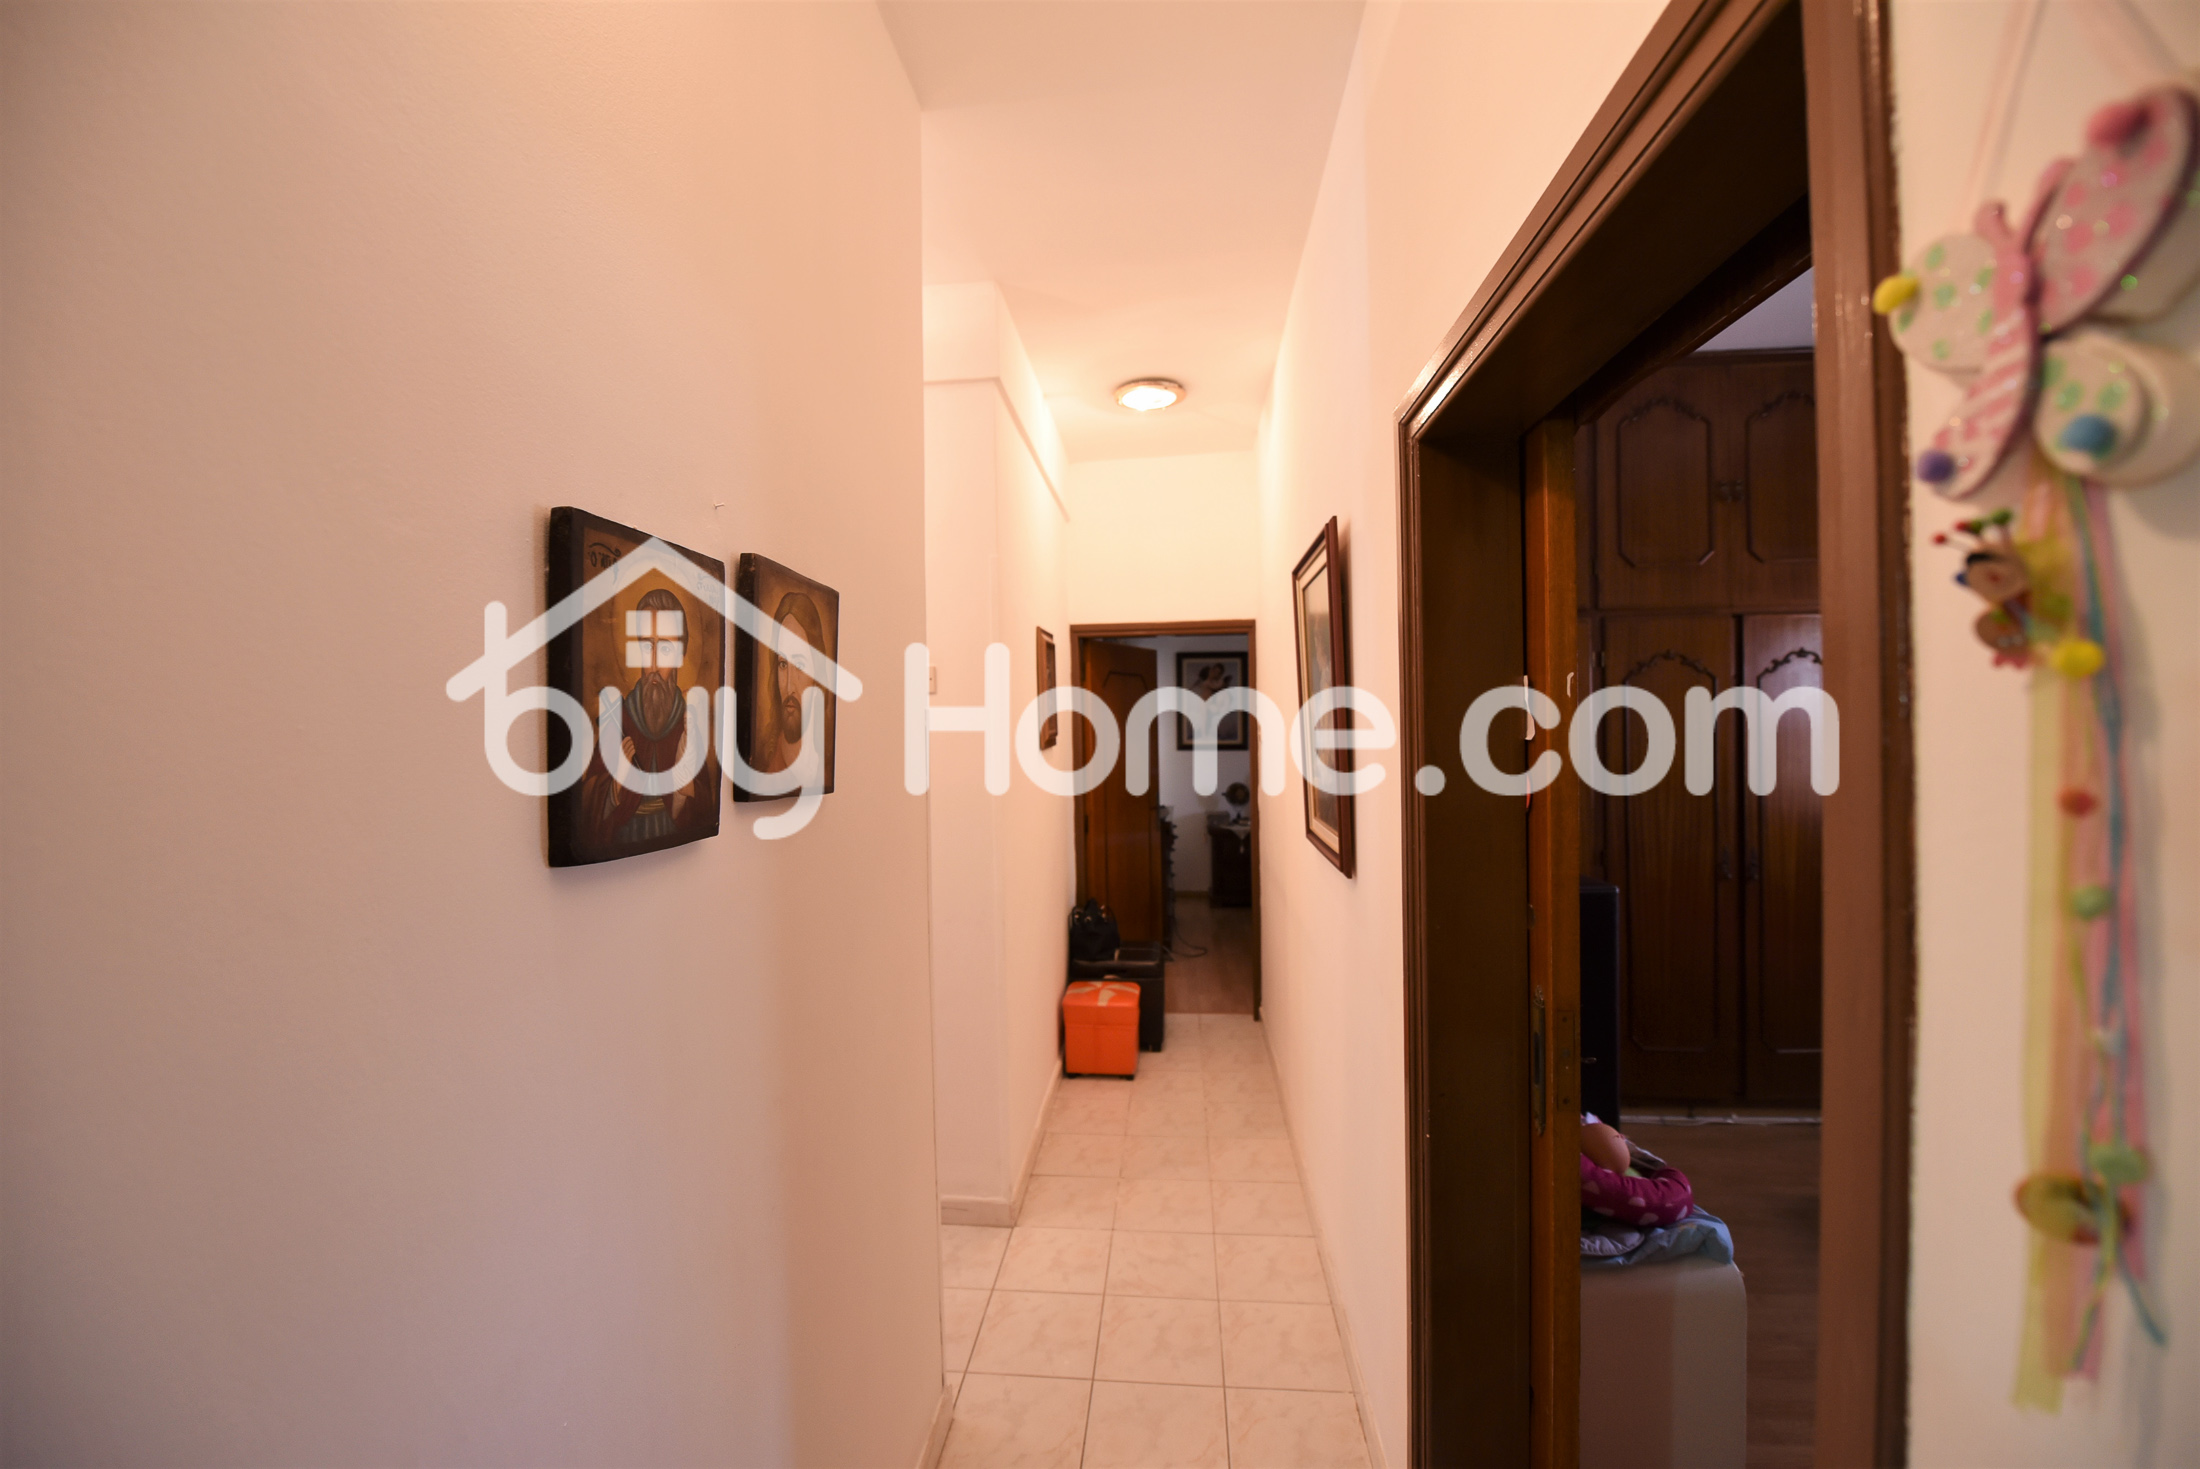 3 Bed Bungalow | BuyHome